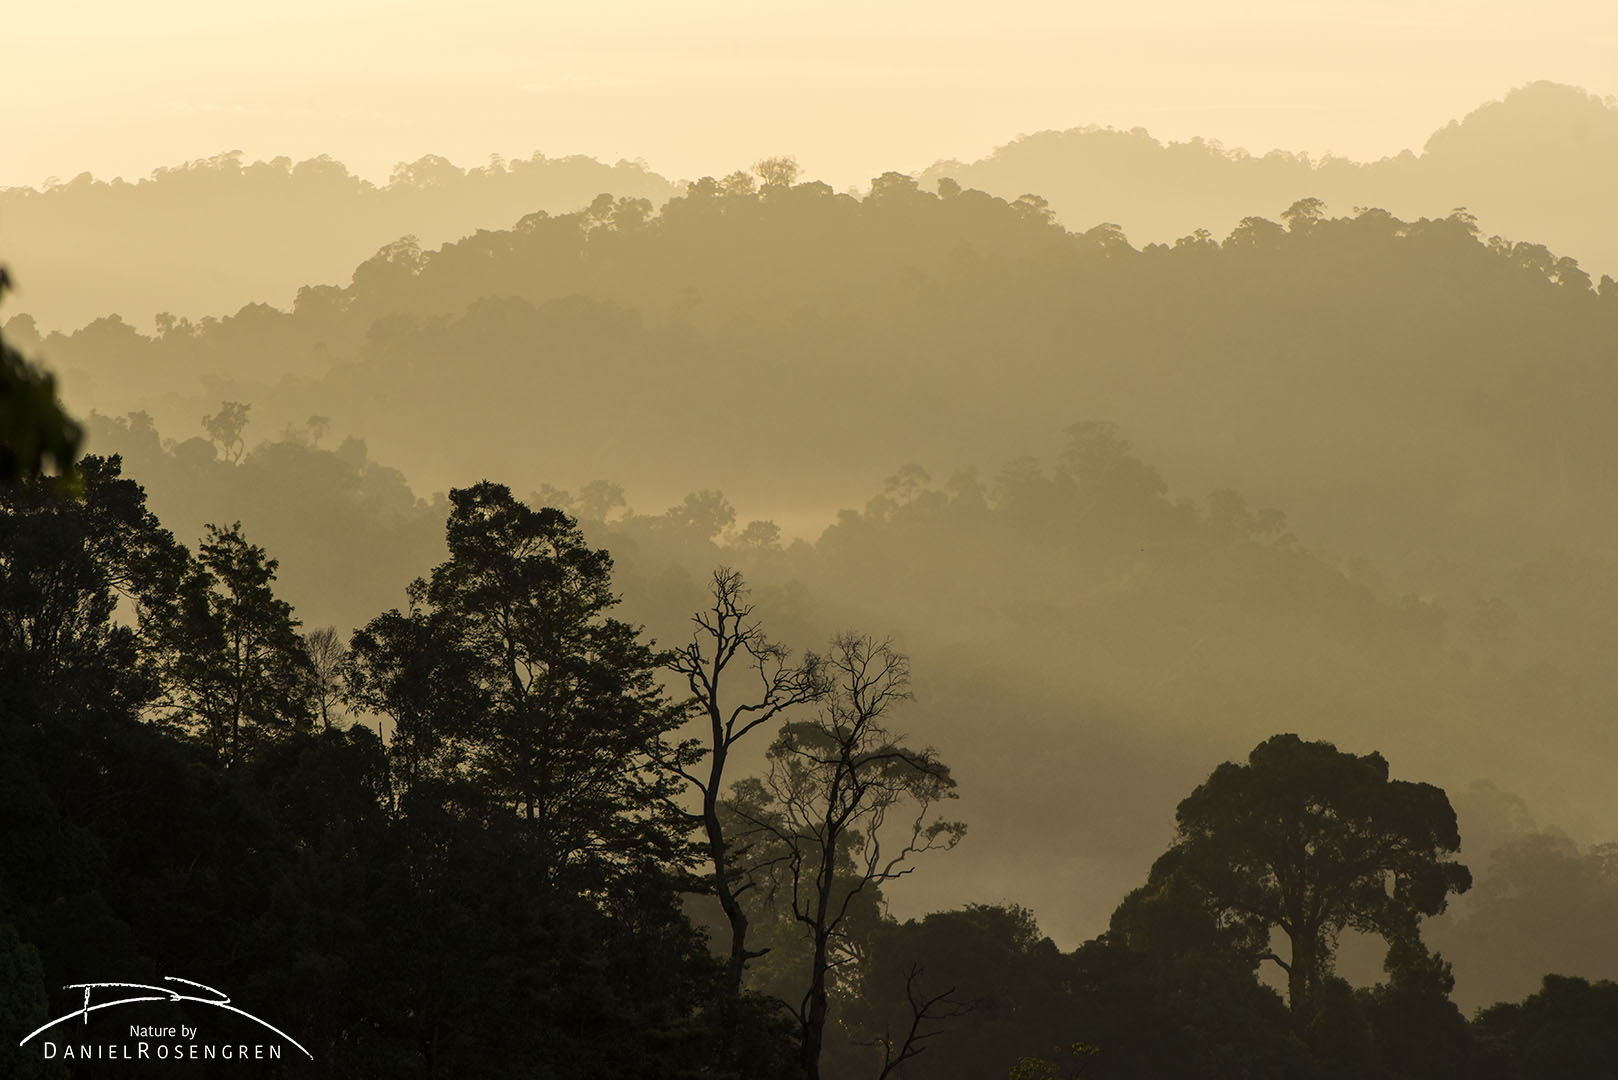 A view over Bukit Tigapuluh NP at sunrise, Sumatra, Indonesia. © Daniel Rosengren